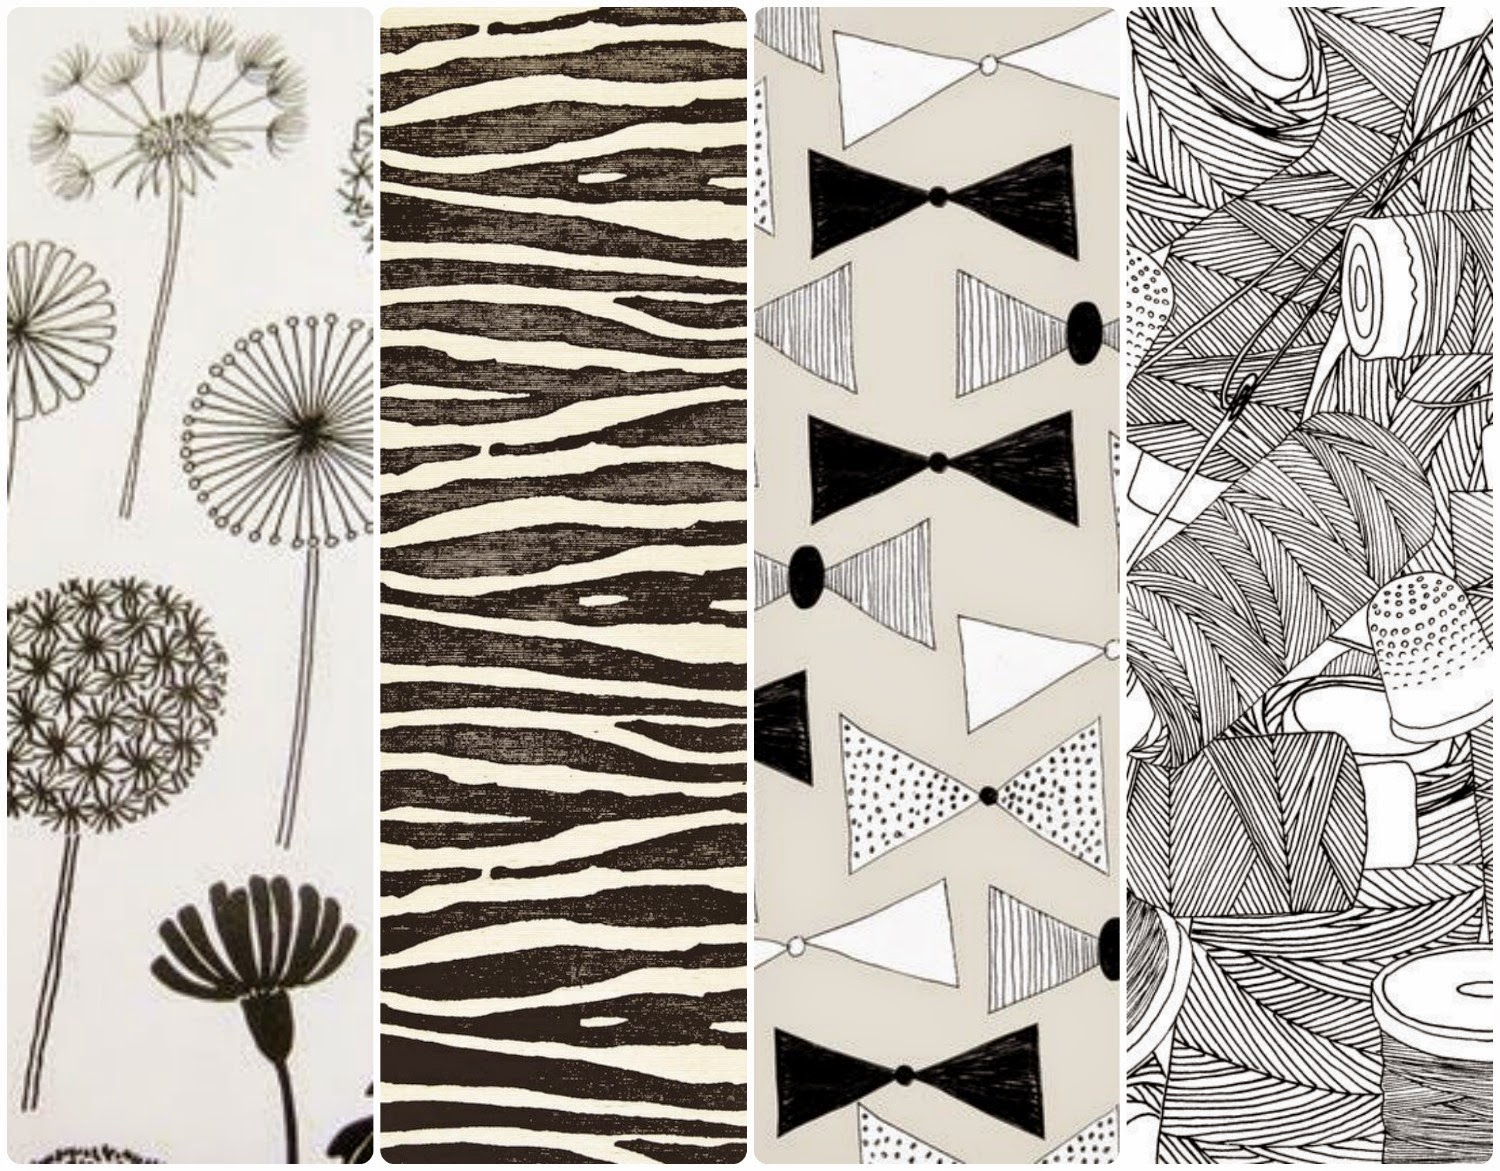 fondos de pantalla whatapp black & white, blanco y negro, gratis dandy lion, animal print bow ties, costura wallpaper illustration free iphone android